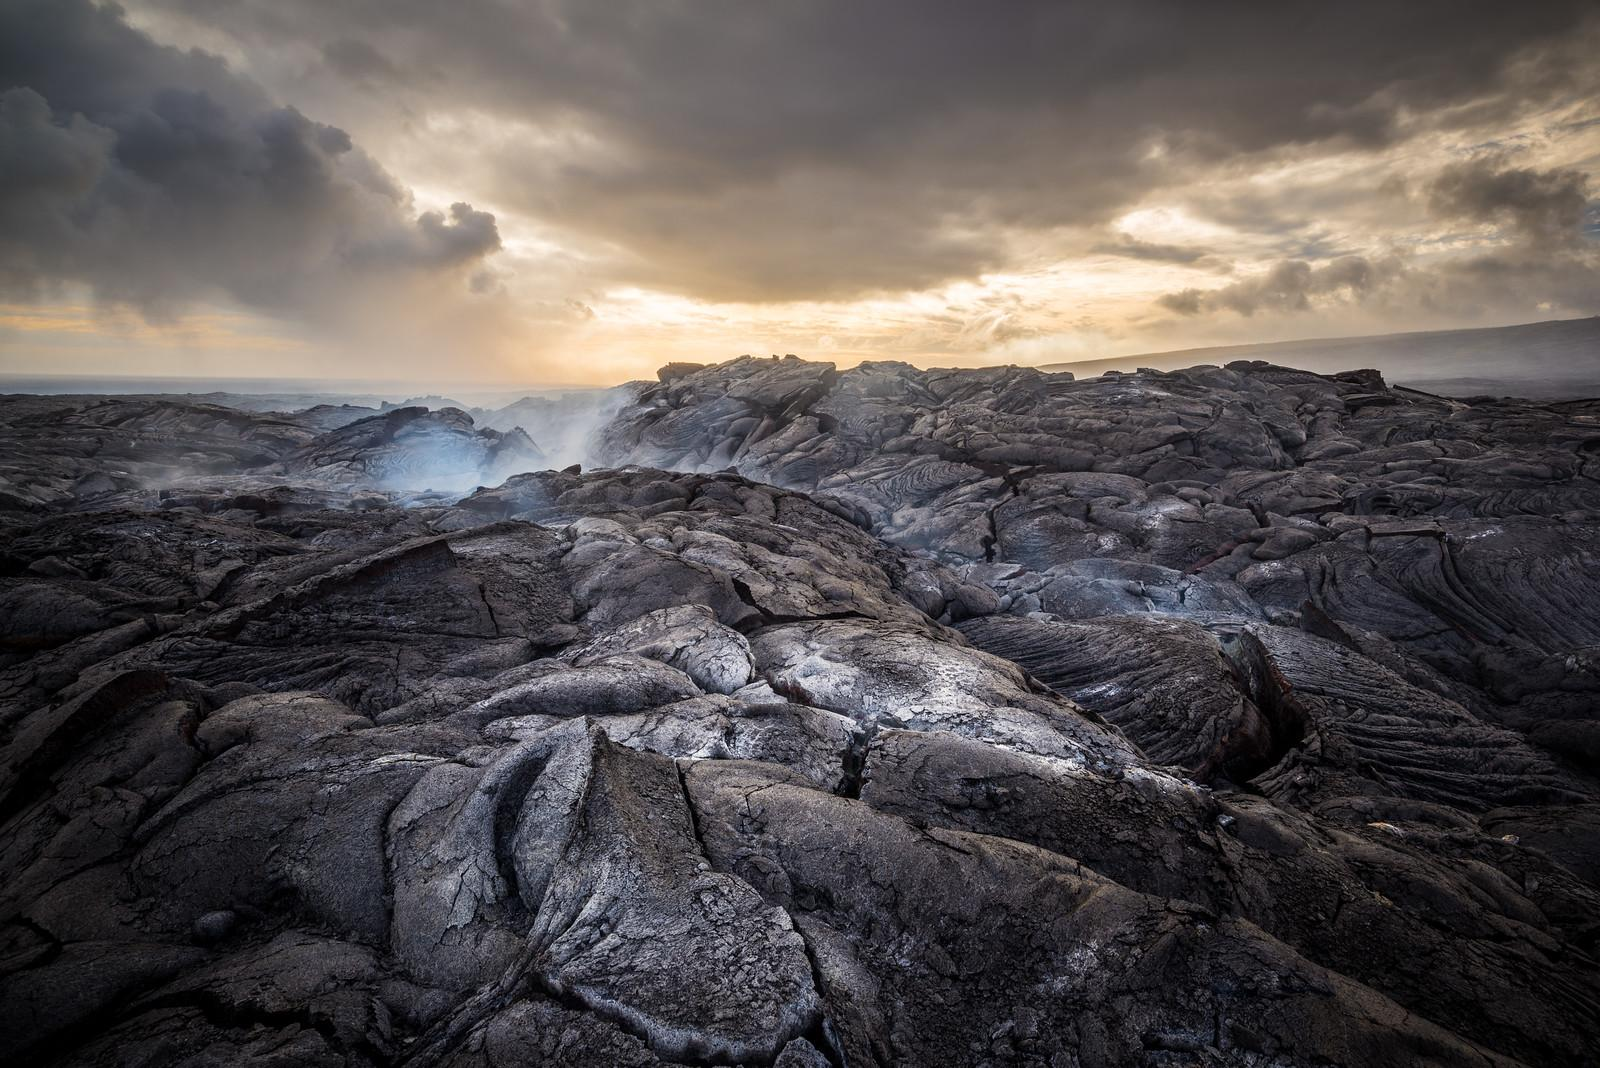 Previous studies argued that Earth's crust 3.5 billion years ago looked like these Hawaiian lavas, but a new study led by UChicago scientists suggests that plate tectonics had already transformed the crust into lighter-colored felsic rock by then. (Basil Greber / University of Chicago)